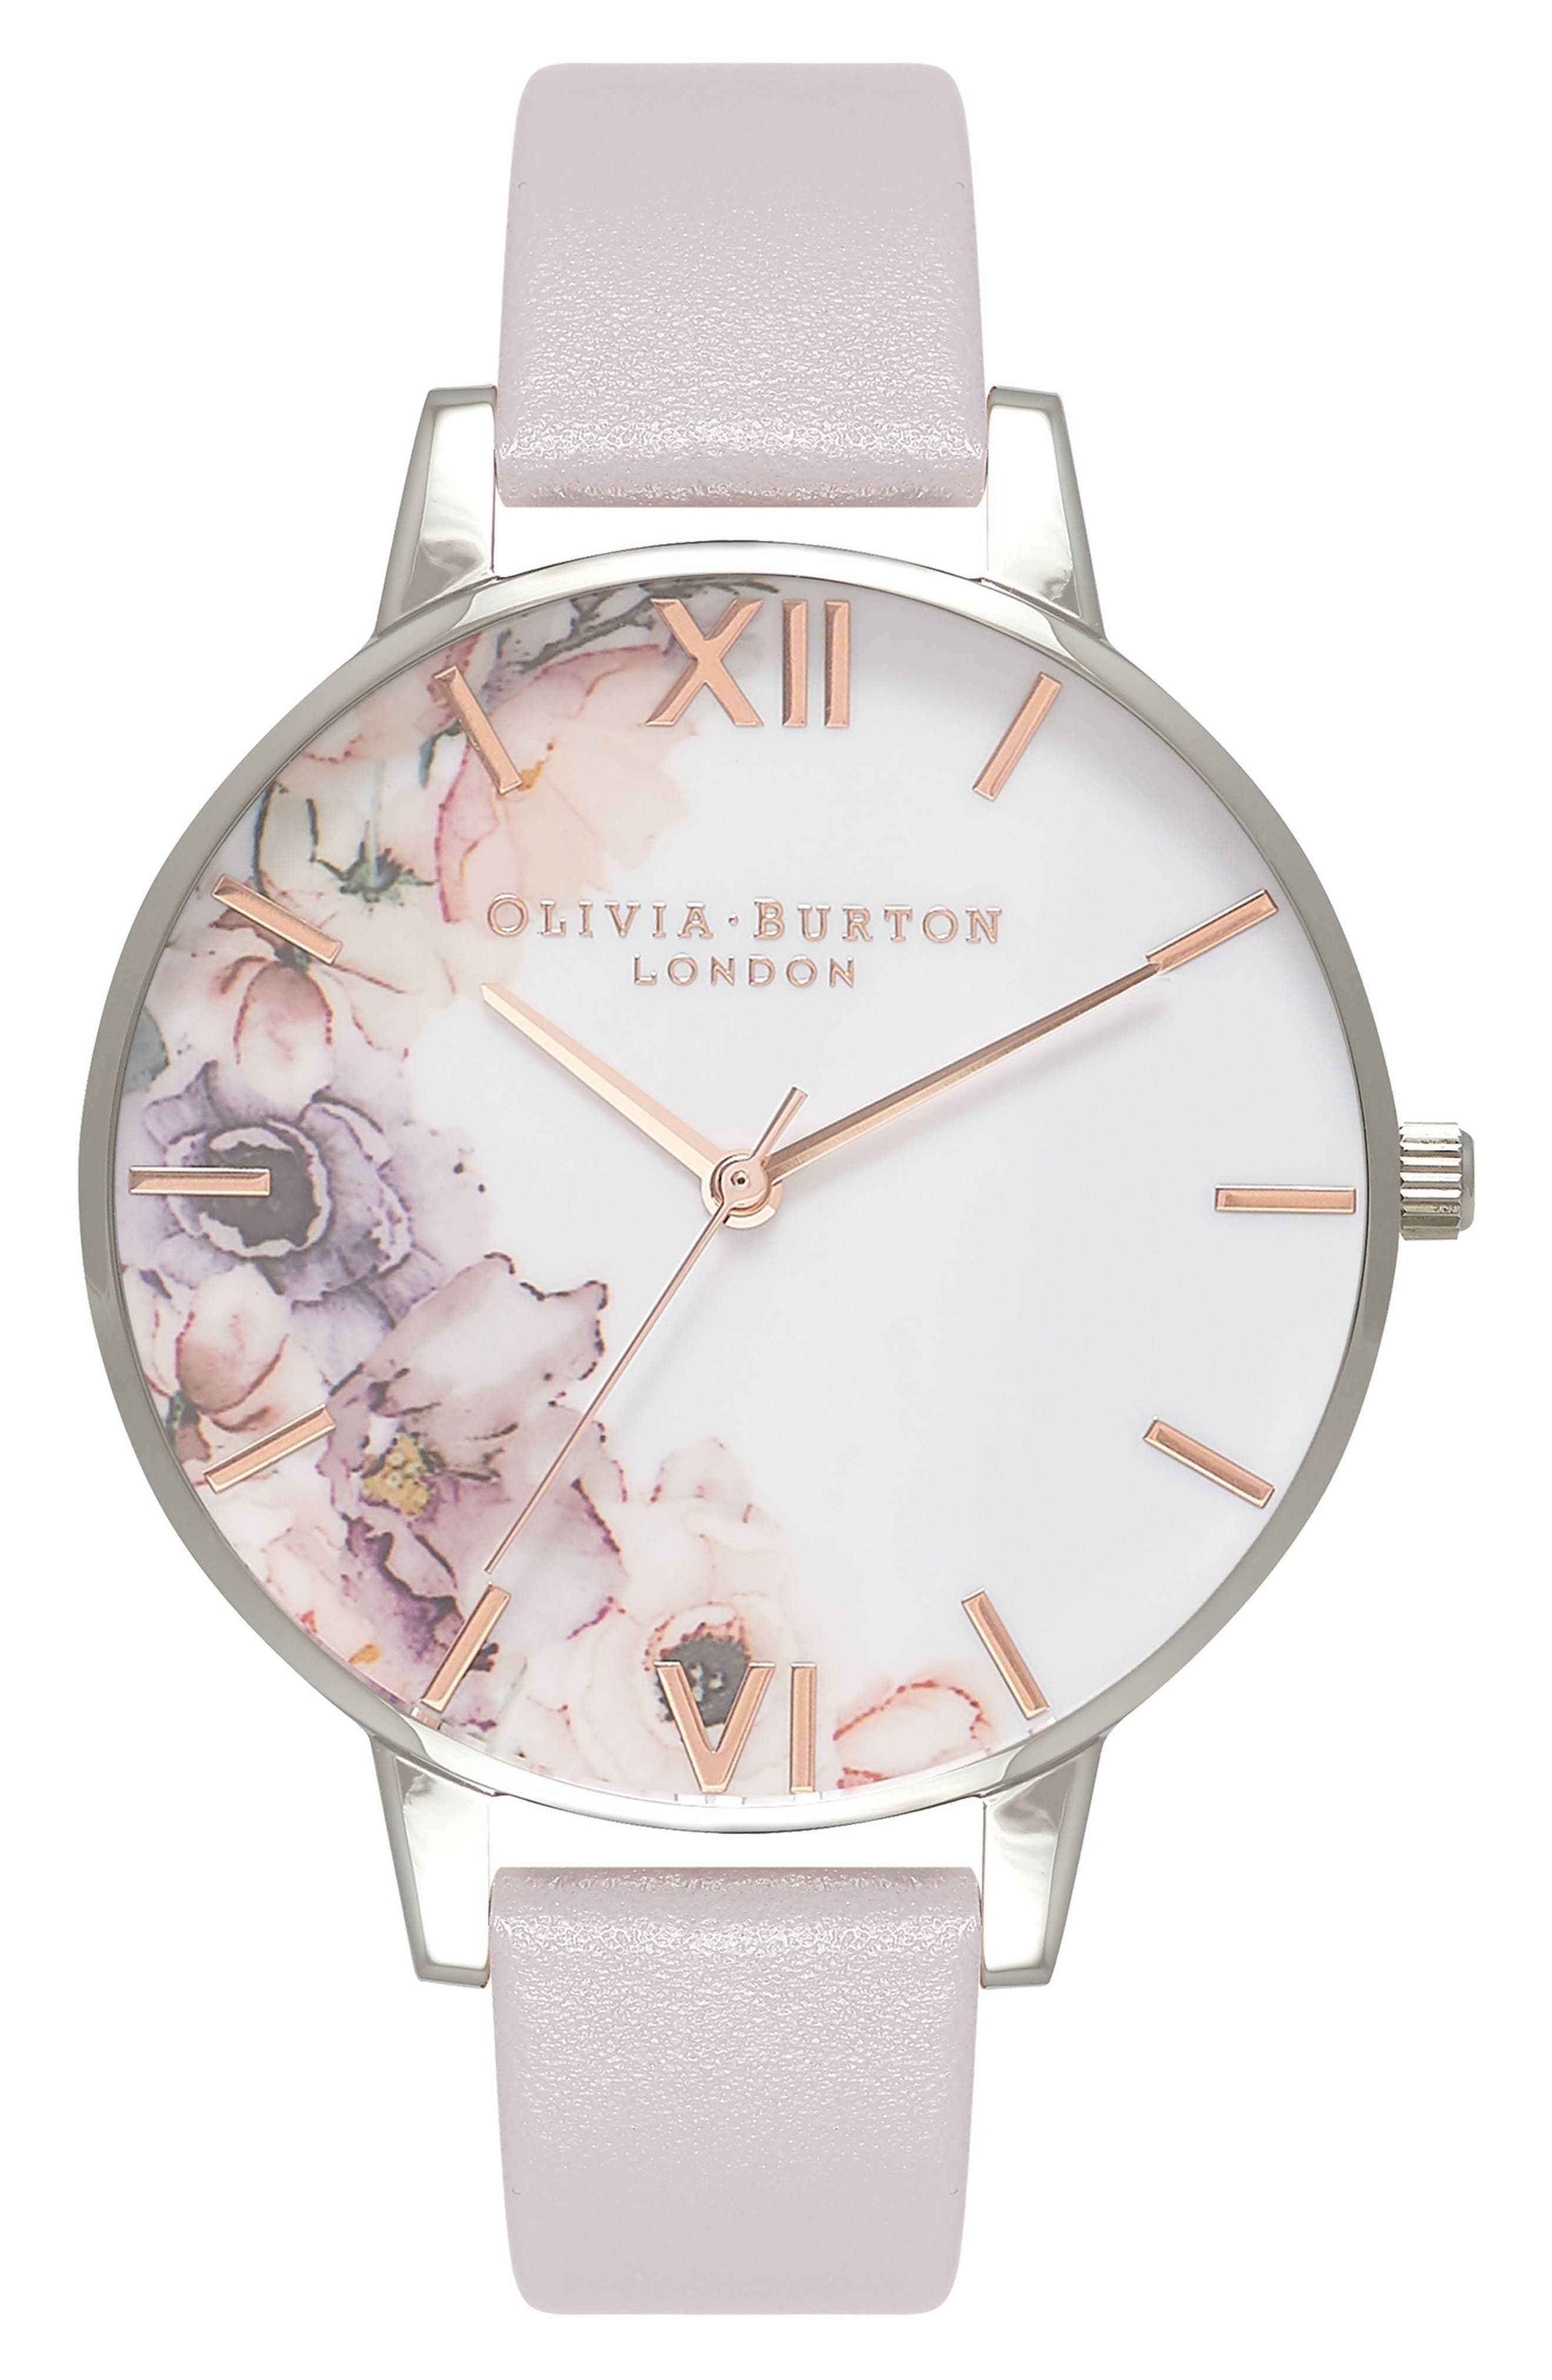 OLIVIA BURTON, Watercolour Florals Leather Strap Watch, 38mm, Main thumbnail 1, color, GREY/ WHITE/ FLORAL/ SILVER